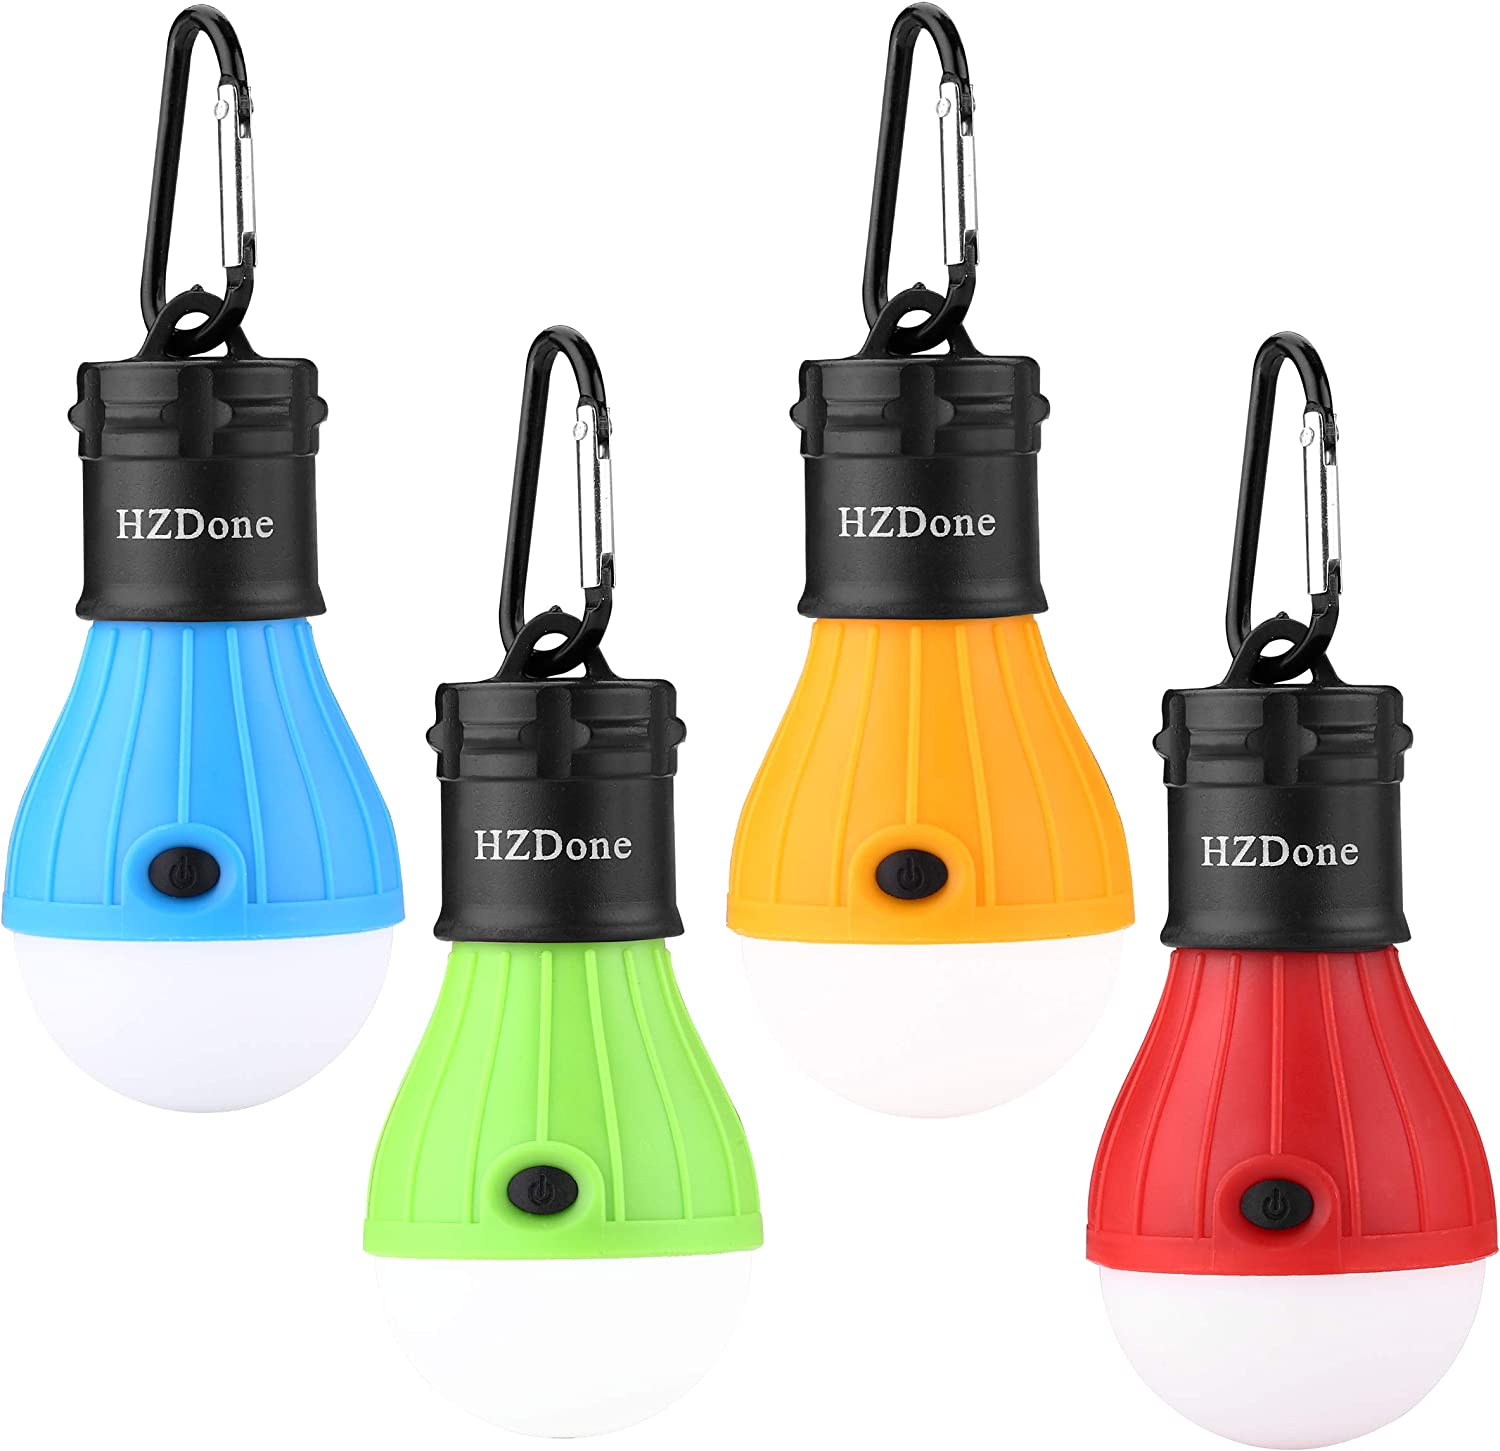 HZDone LED Camping Lantern 4 Pack Portable Outdoor Tent Light Bulb for Camping Hiking Fishing Hurricane Storm Outage-Battery Powered Emergency Light Red Blue Yellow Green Color Options